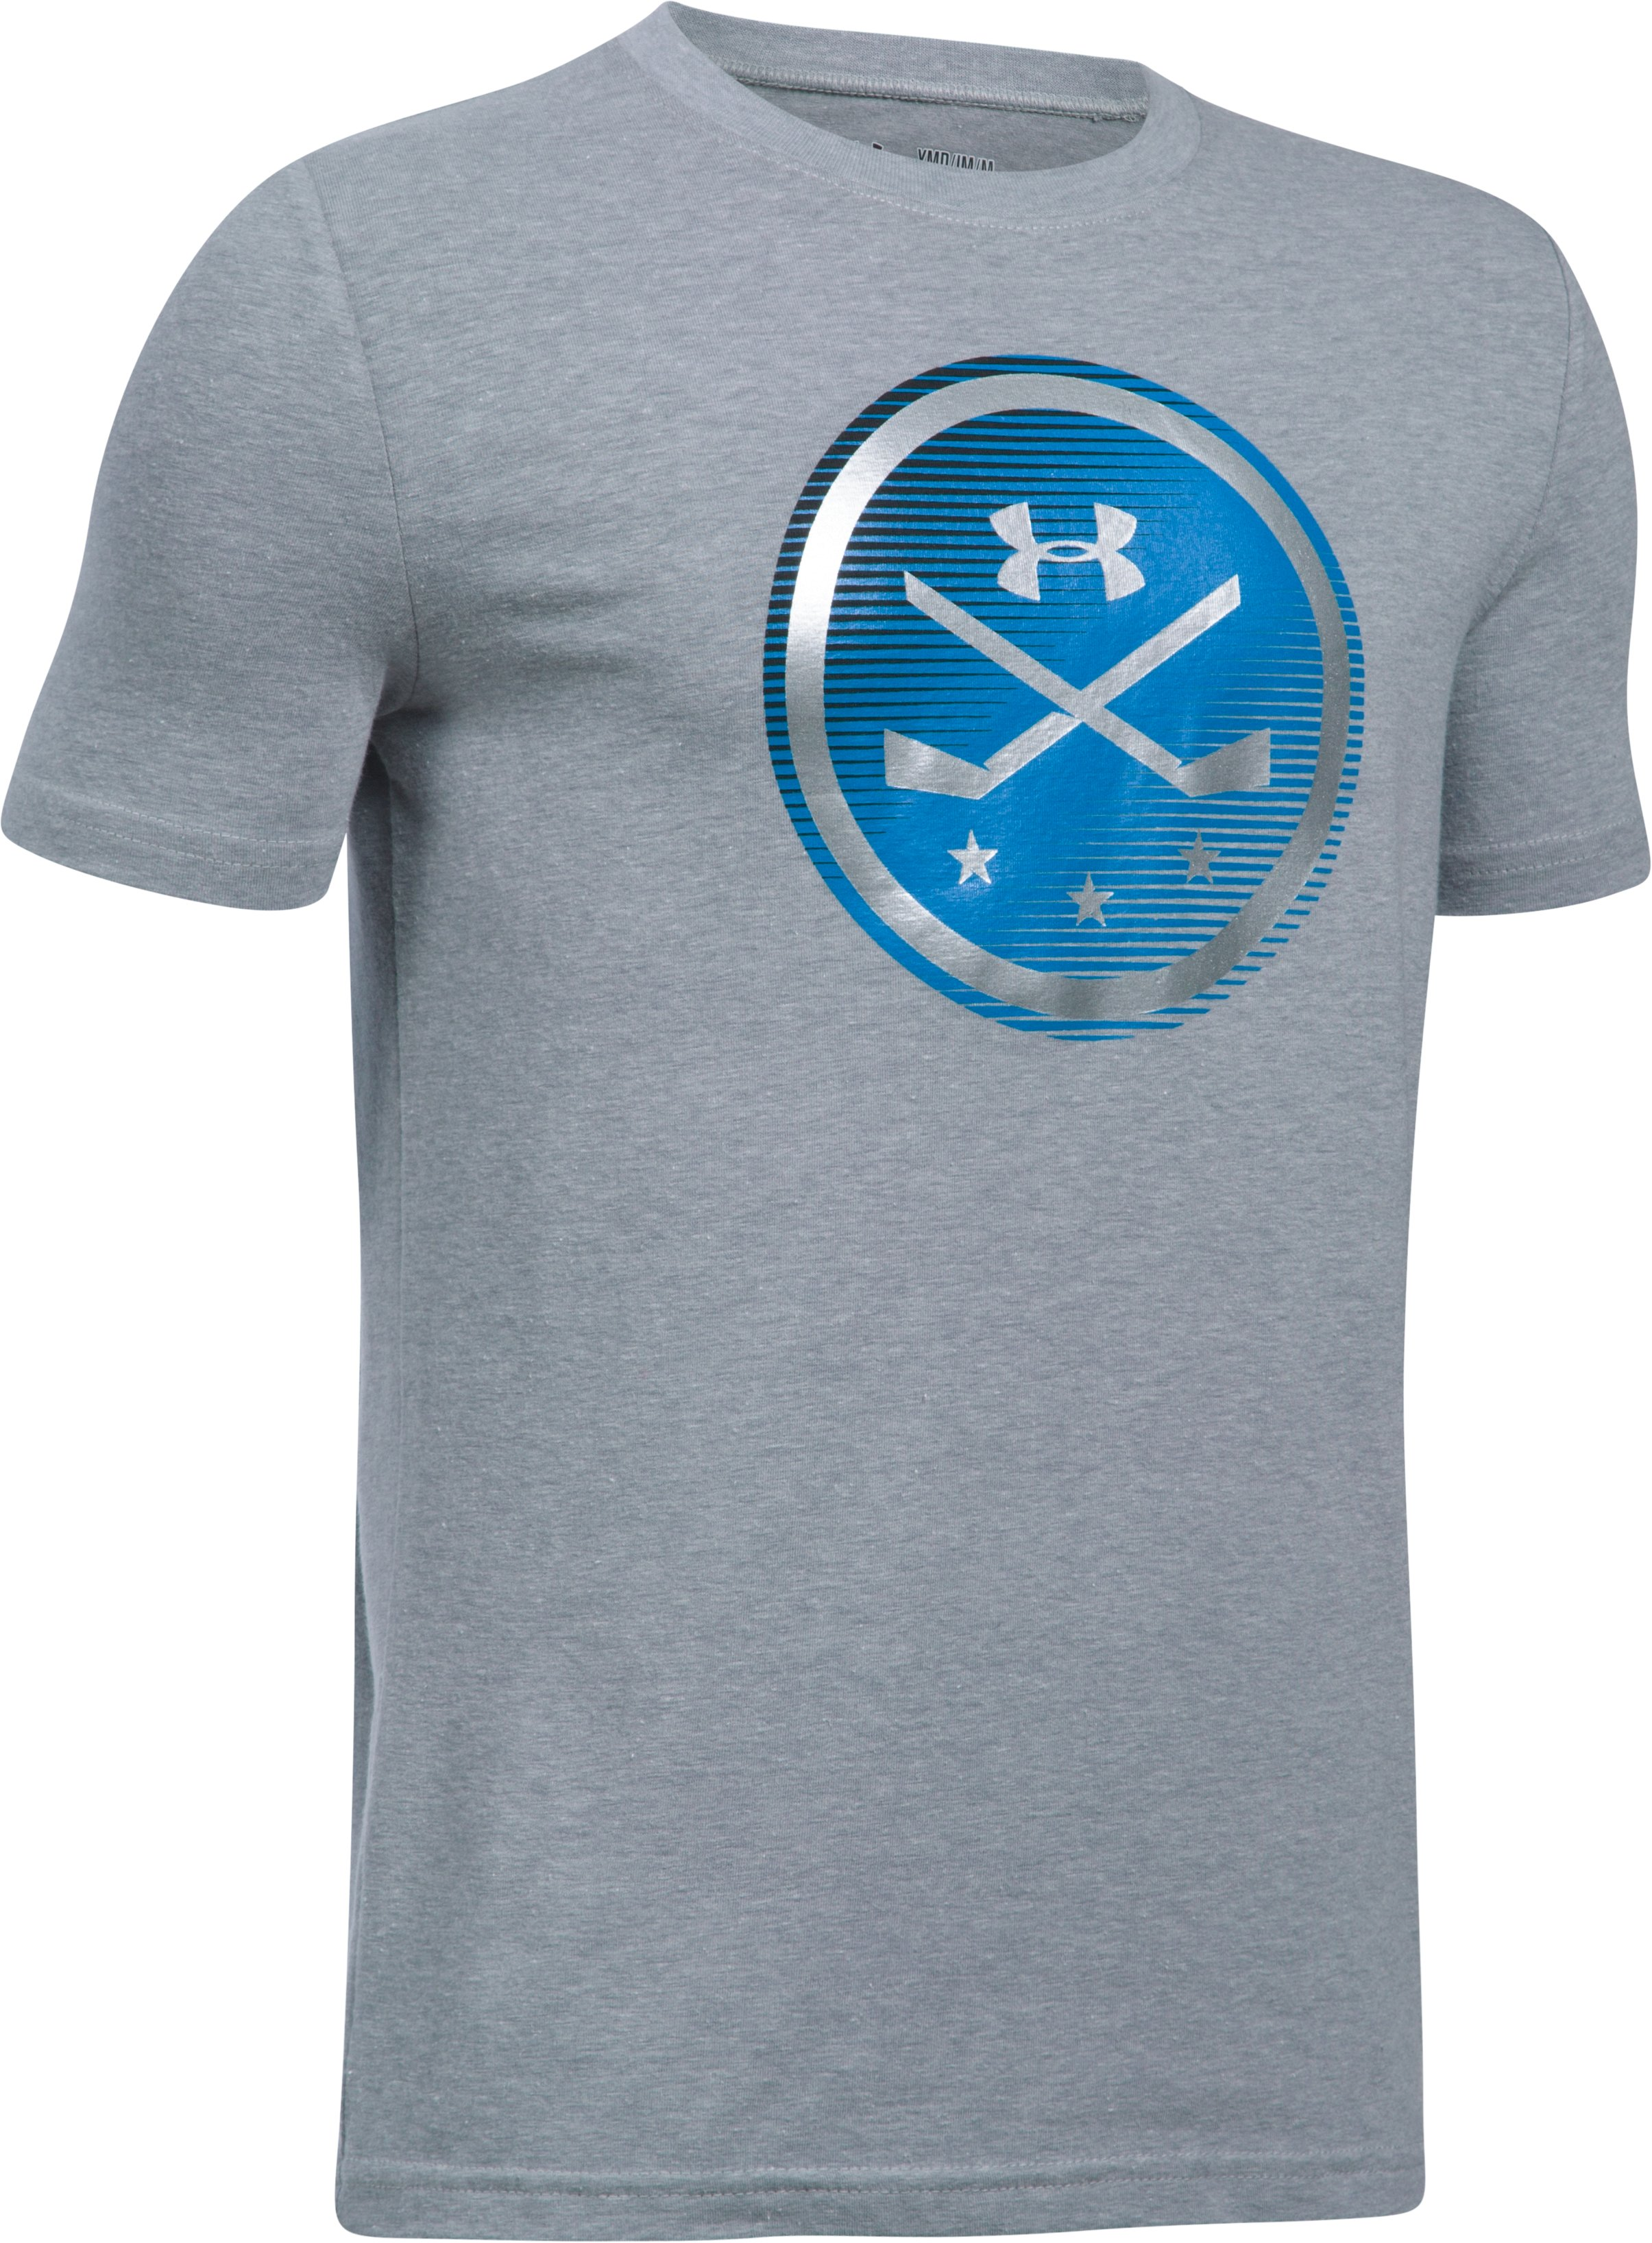 Boys' UA Hockey Logo T-Shirt, STEEL LIGHT HEATHER,